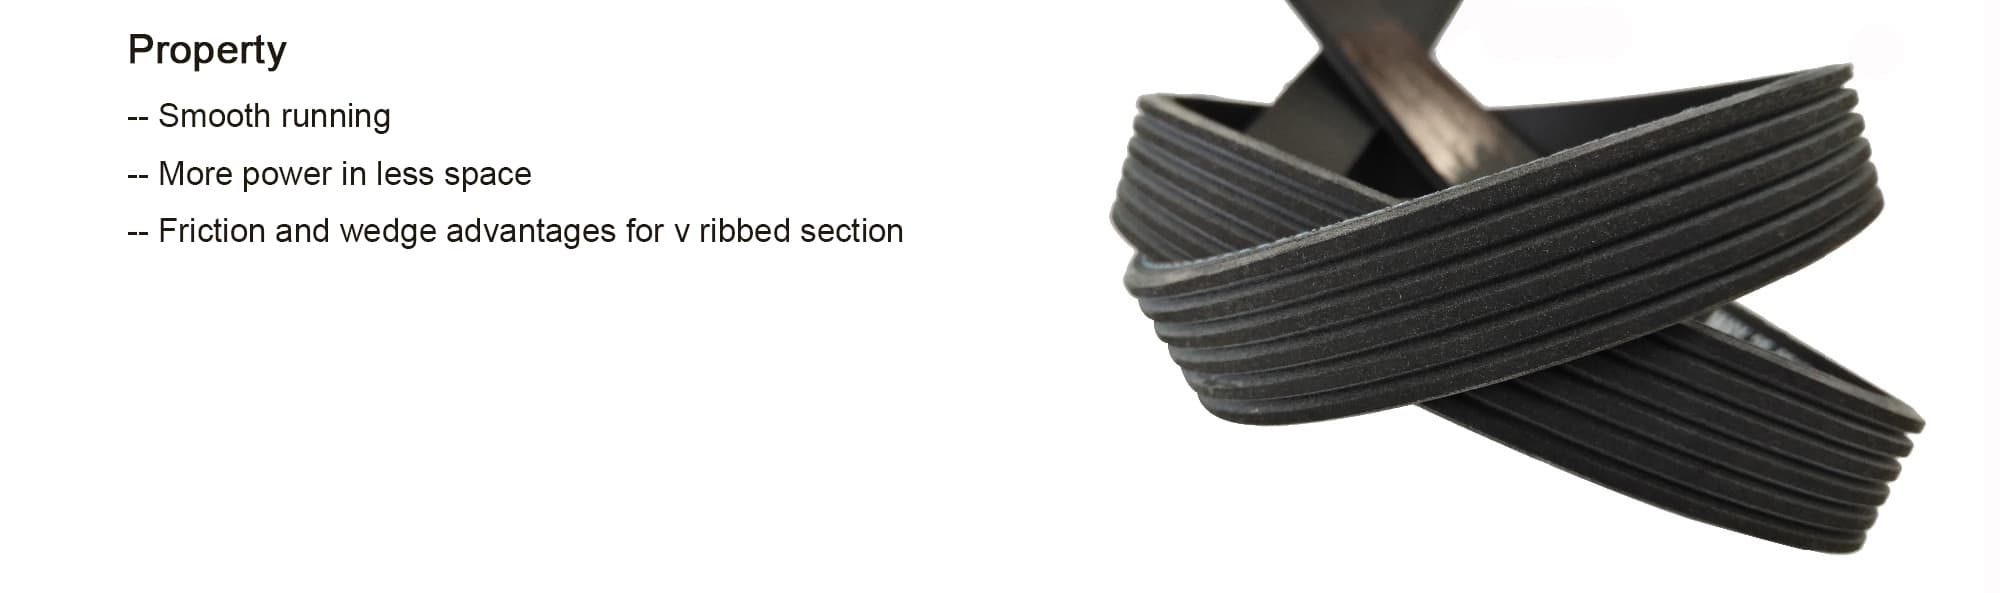 EPDM 8PK 4PK multi poly rib PK v belt 6PK v-ribbed automotive ribbed v belt